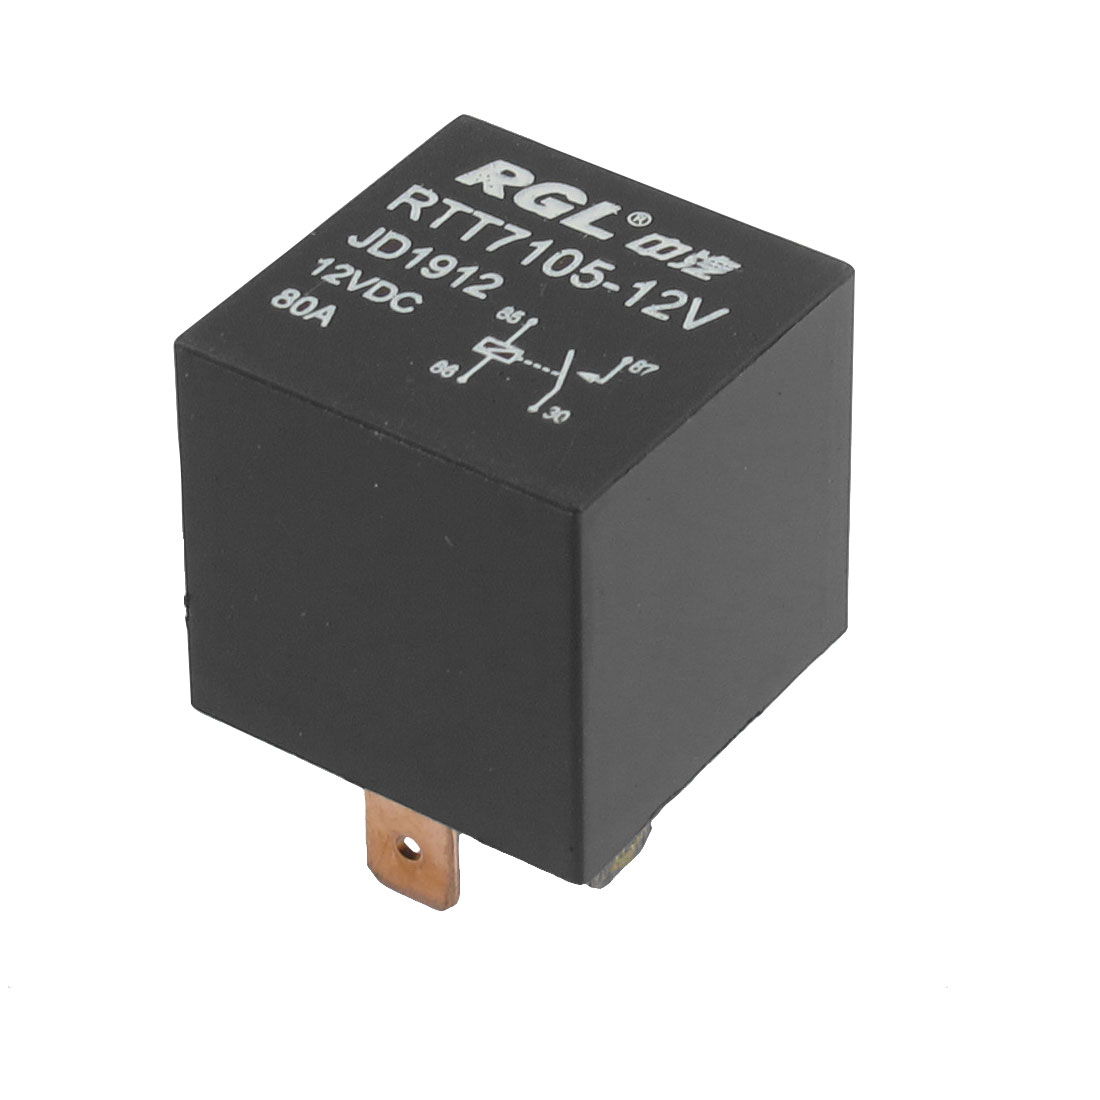 DC 12V 80A 1NO SPST 4 Pins 15mm Rail Socket Automotive Truck Car Relay